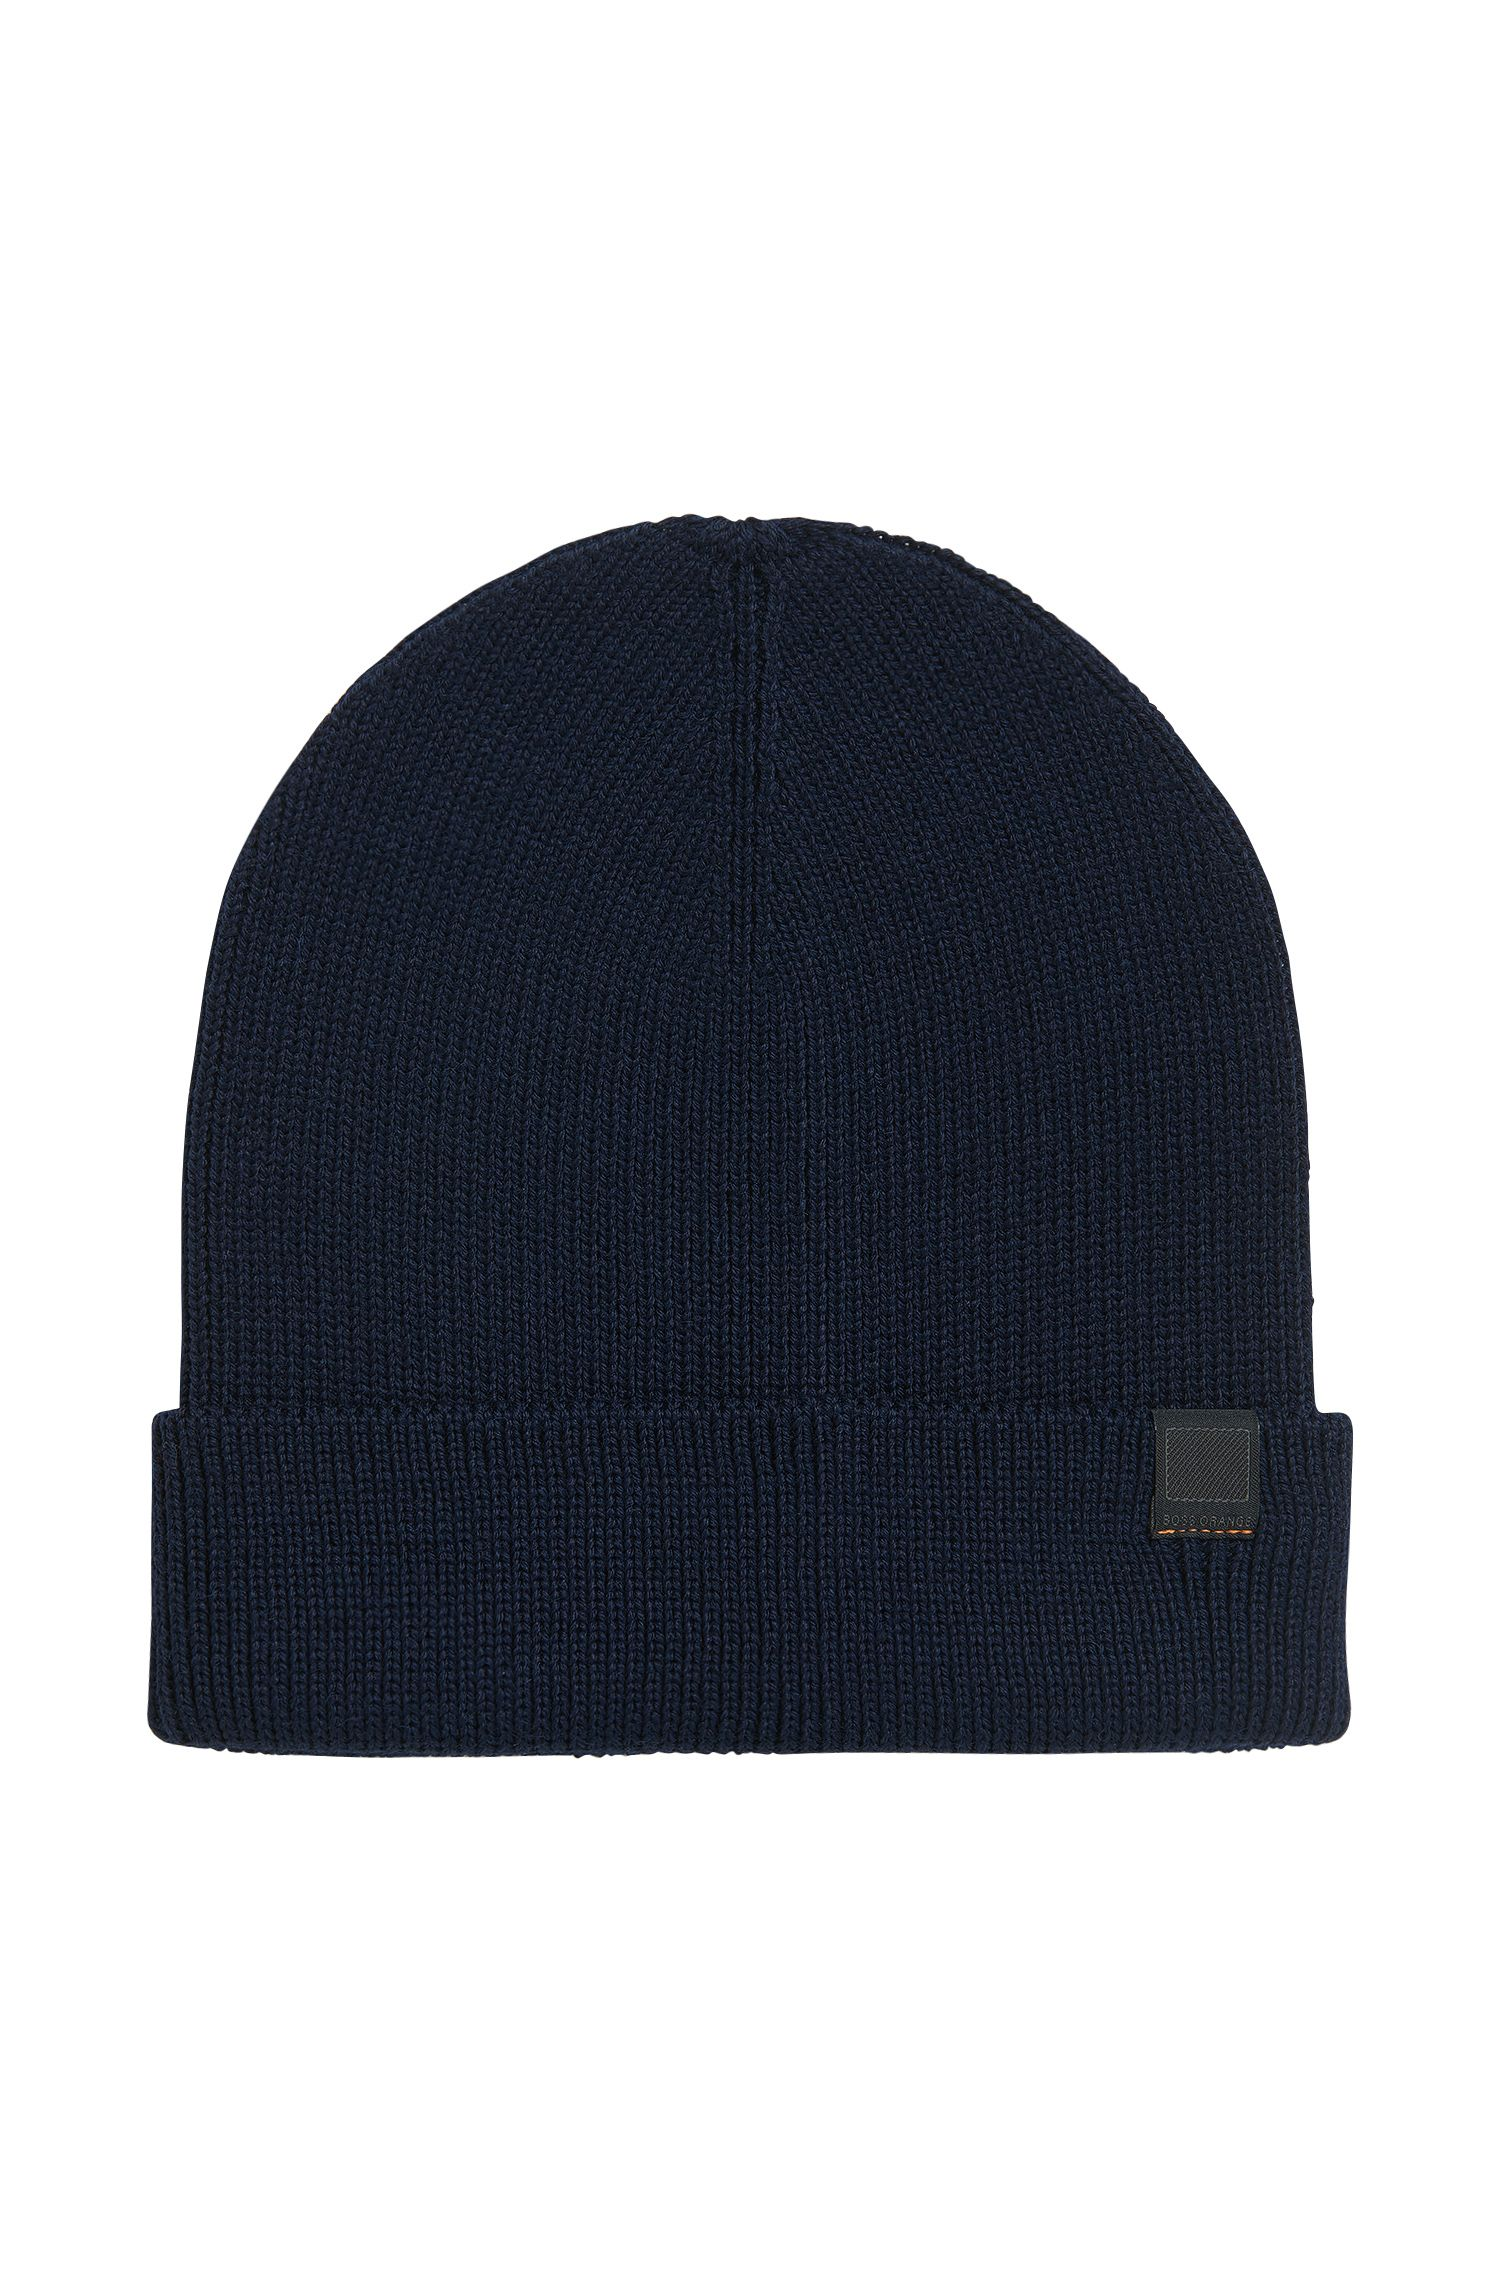 Snug knitted beanie hat in wool blend